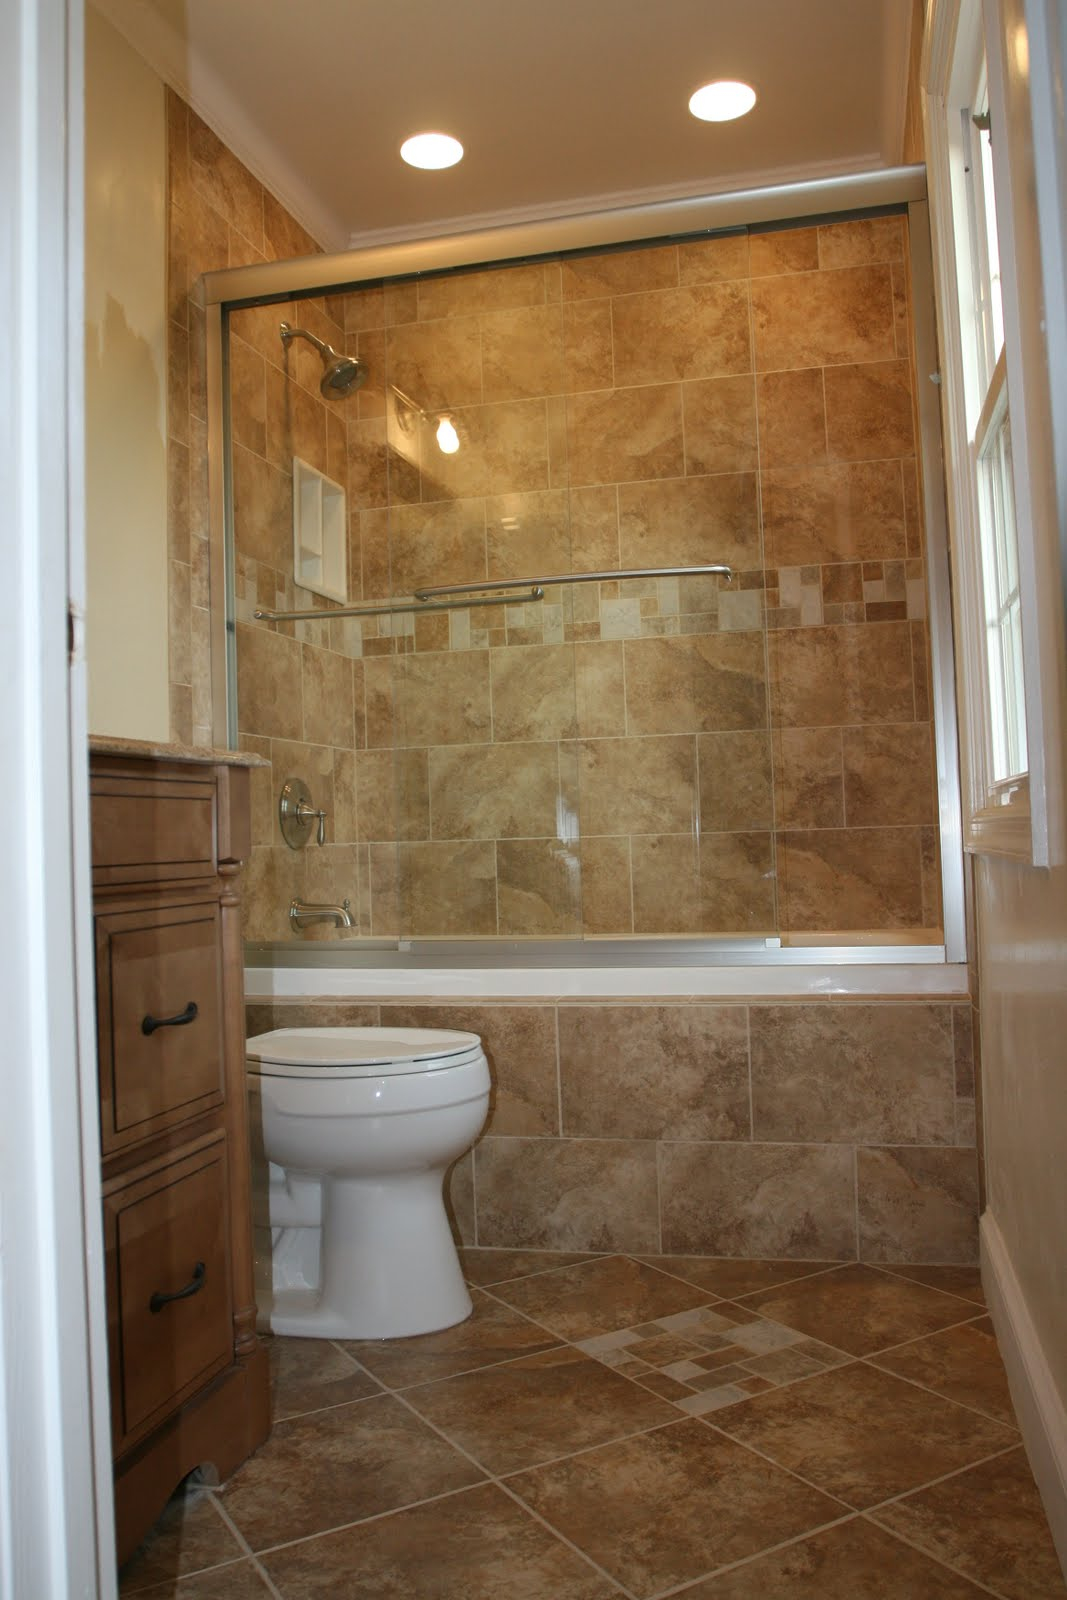 Bathroom remodeling design ideas tile shower niches for Bathroom renovation designs